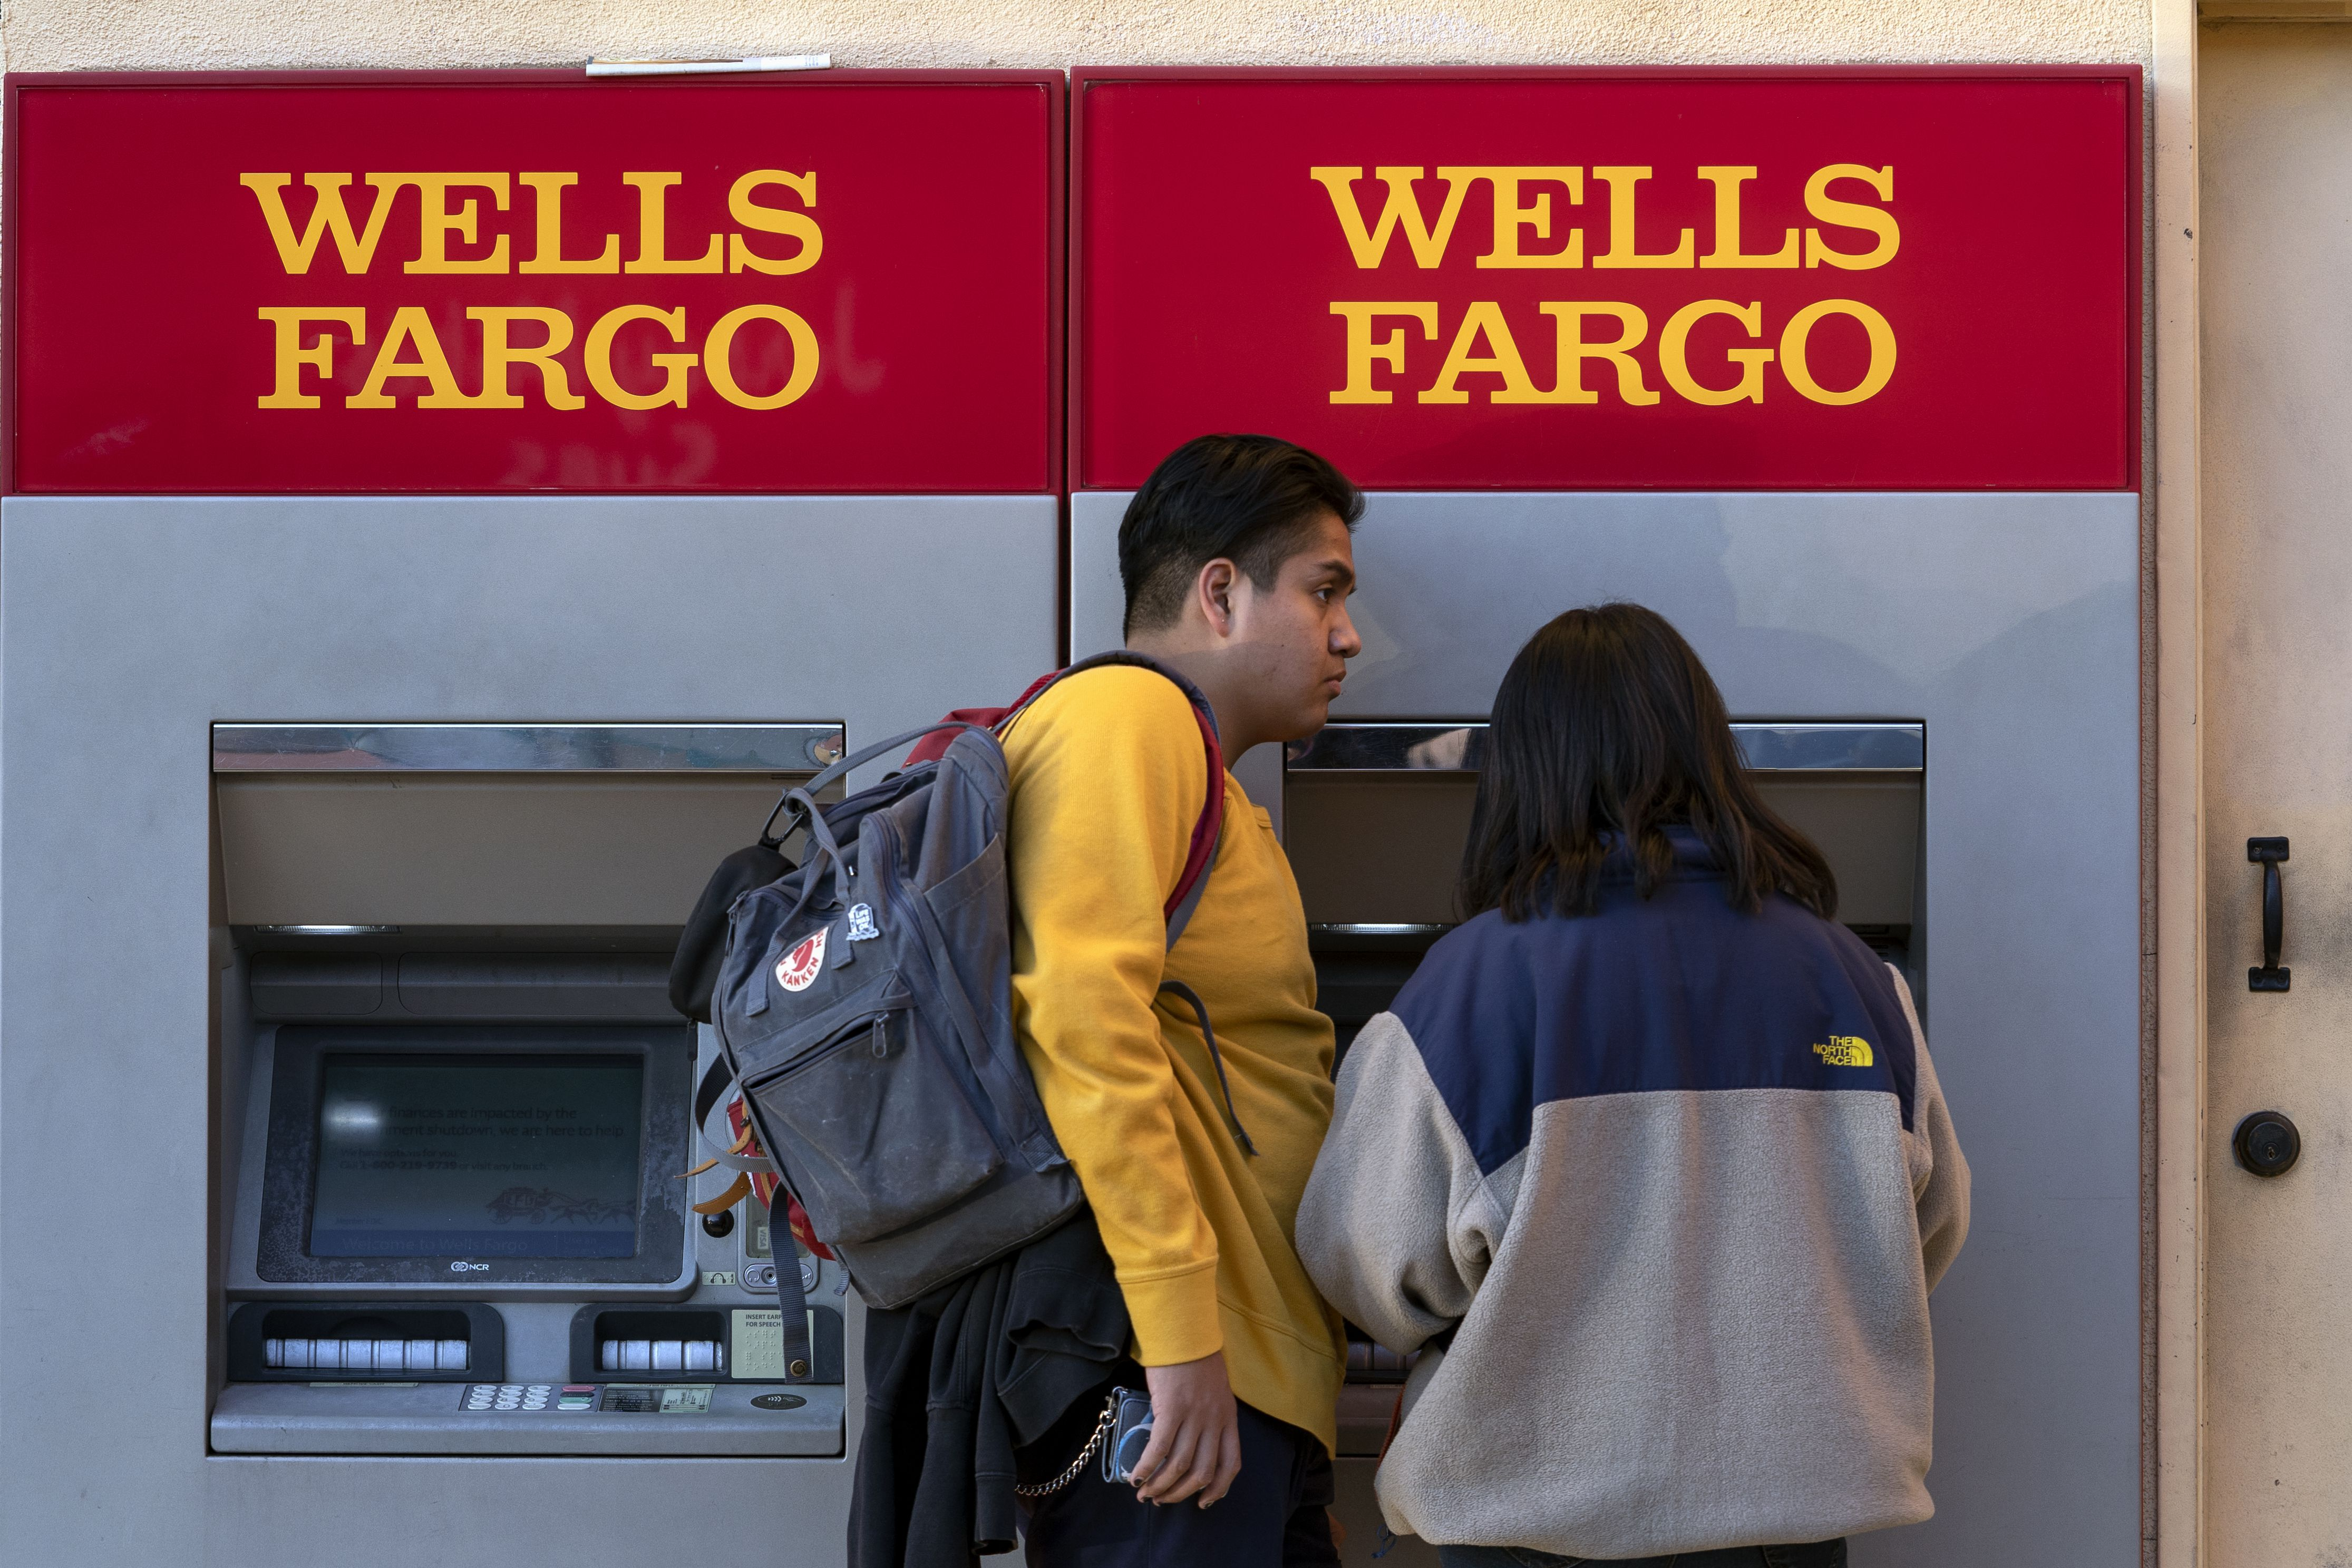 Wells Fargo agrees to pay $3 billion to settle consumer abuse charges - Axios